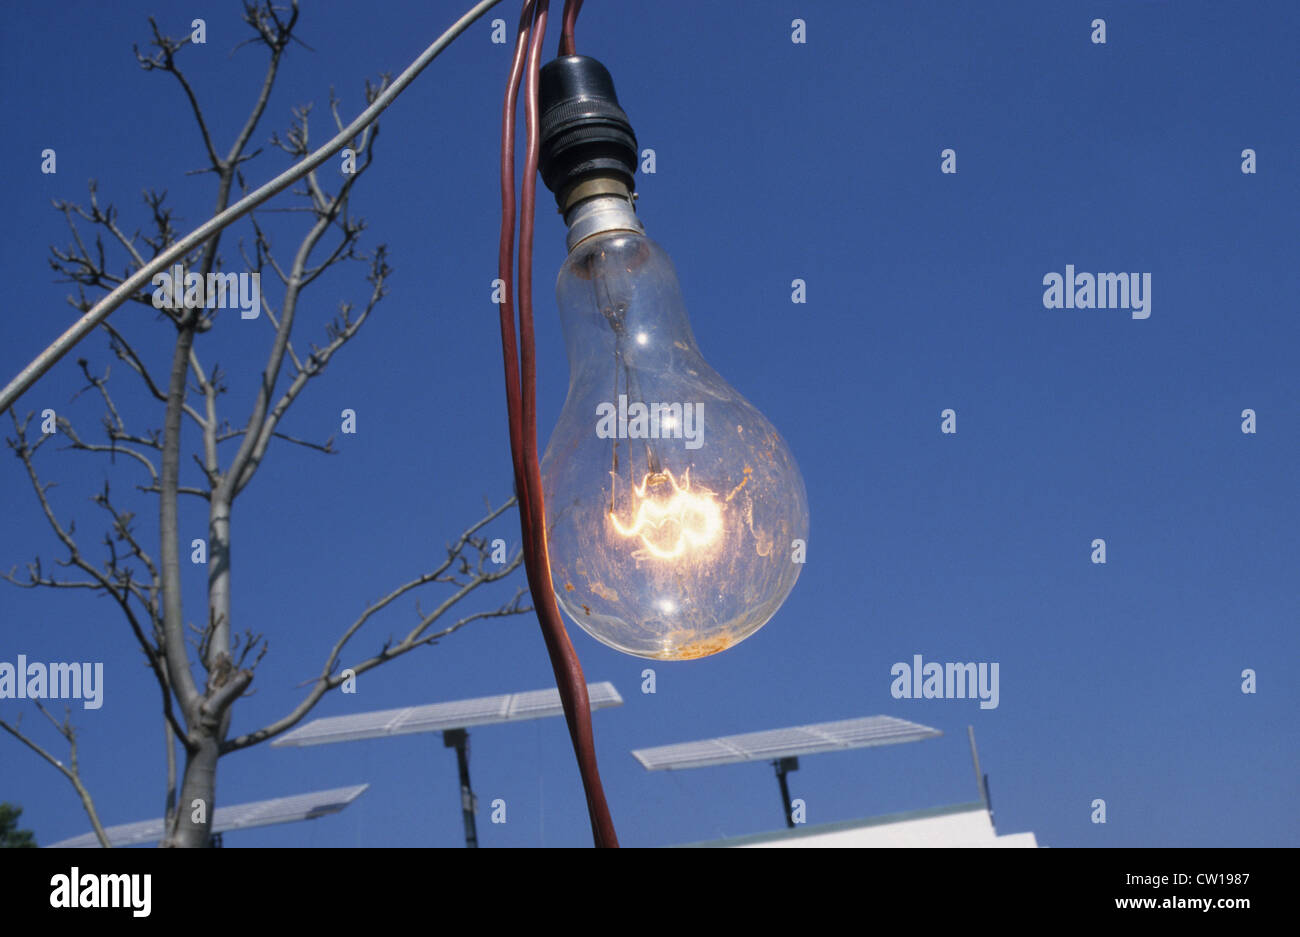 INDIA light bulb with solar power supply from Photovoltaic panel at farm near Bangalore - Stock Image